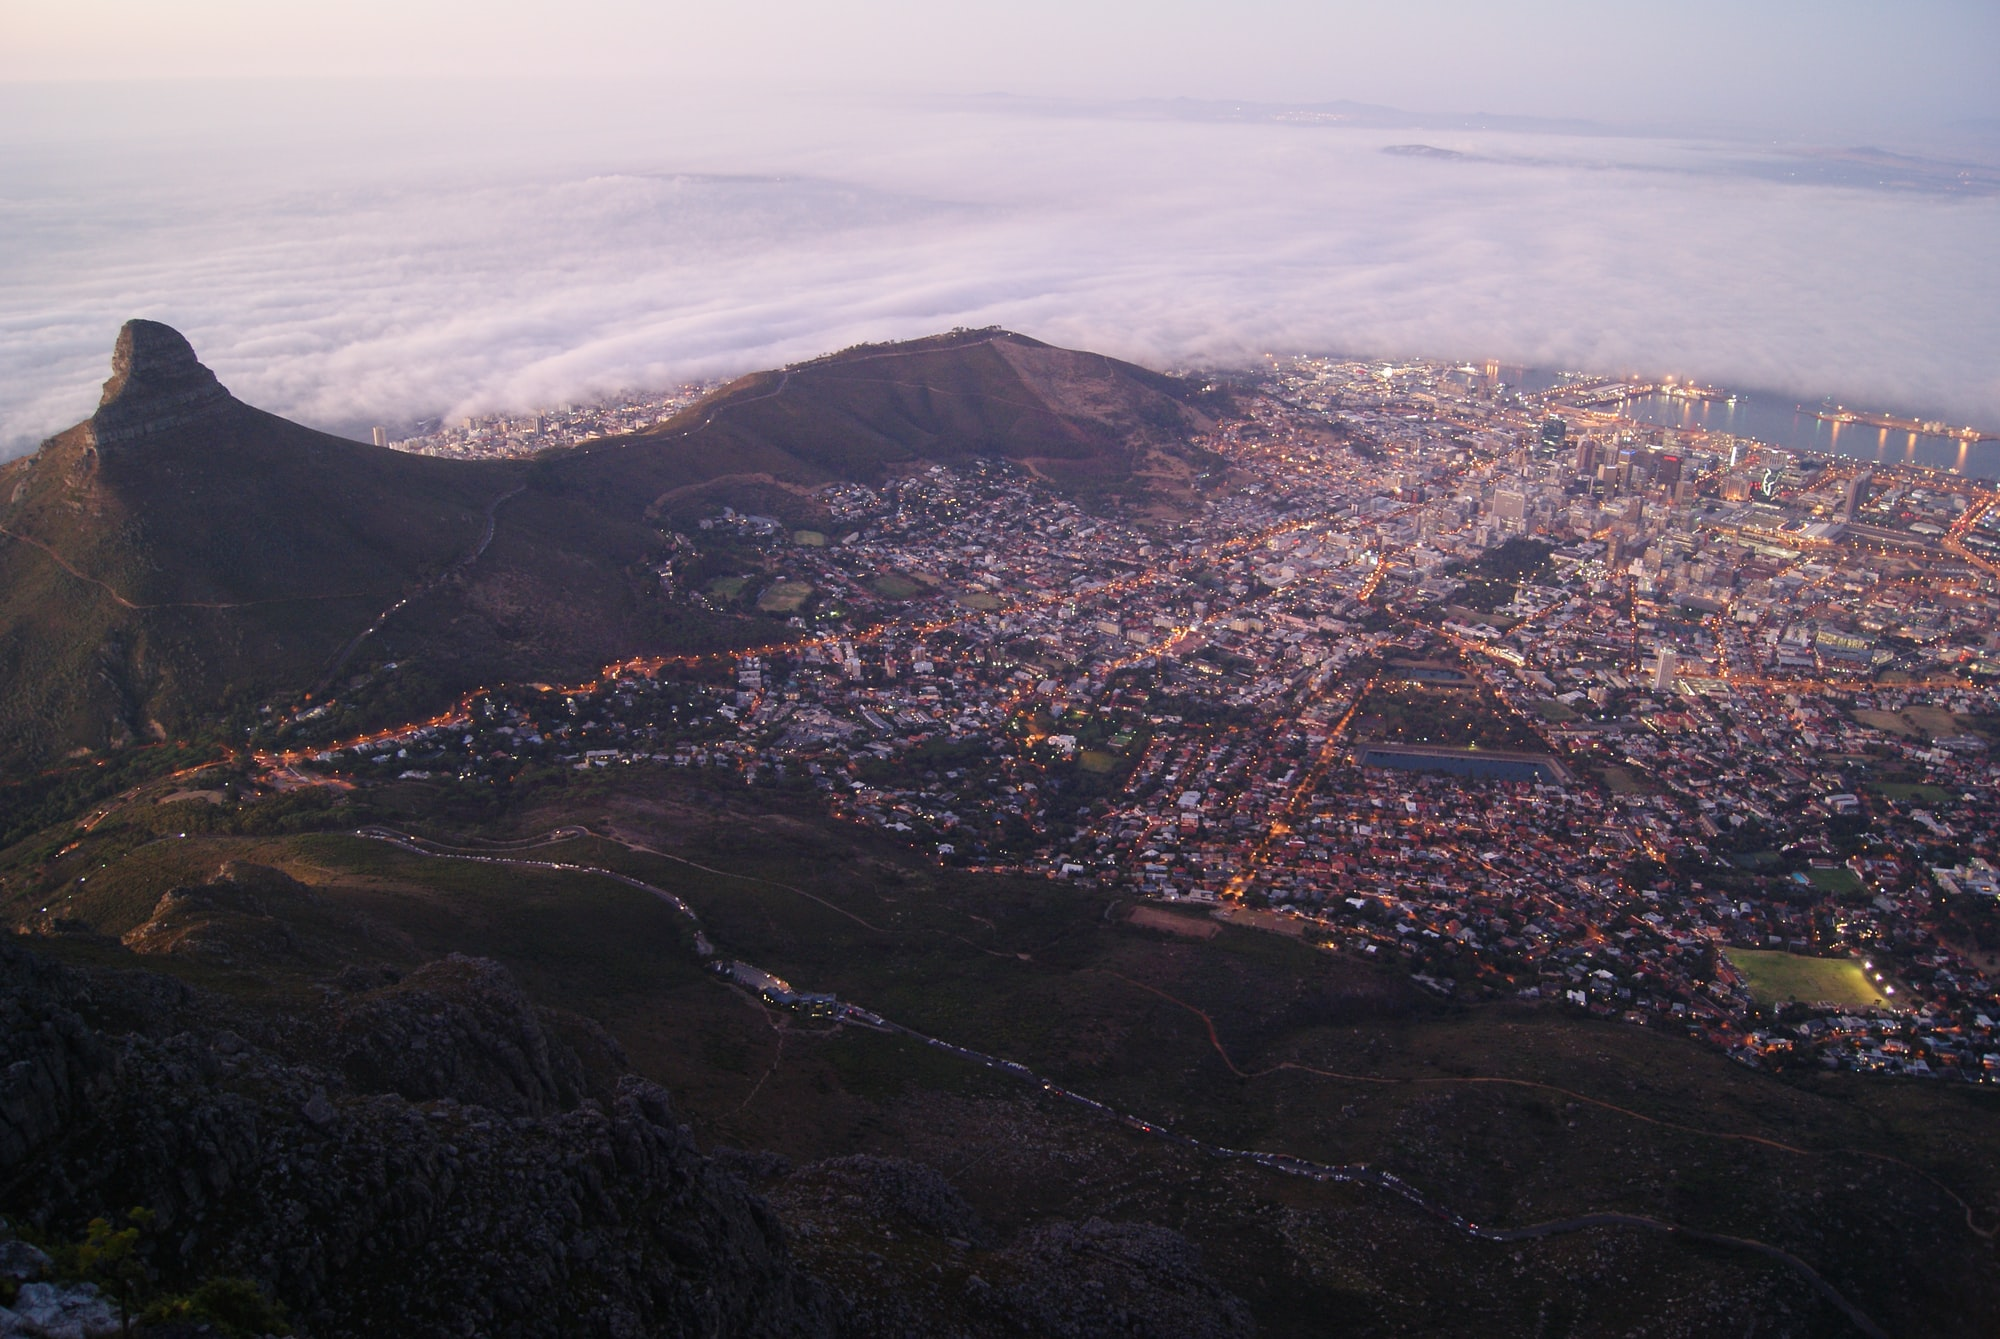 Is Cape Town the best city in South Africa to start a tech business?